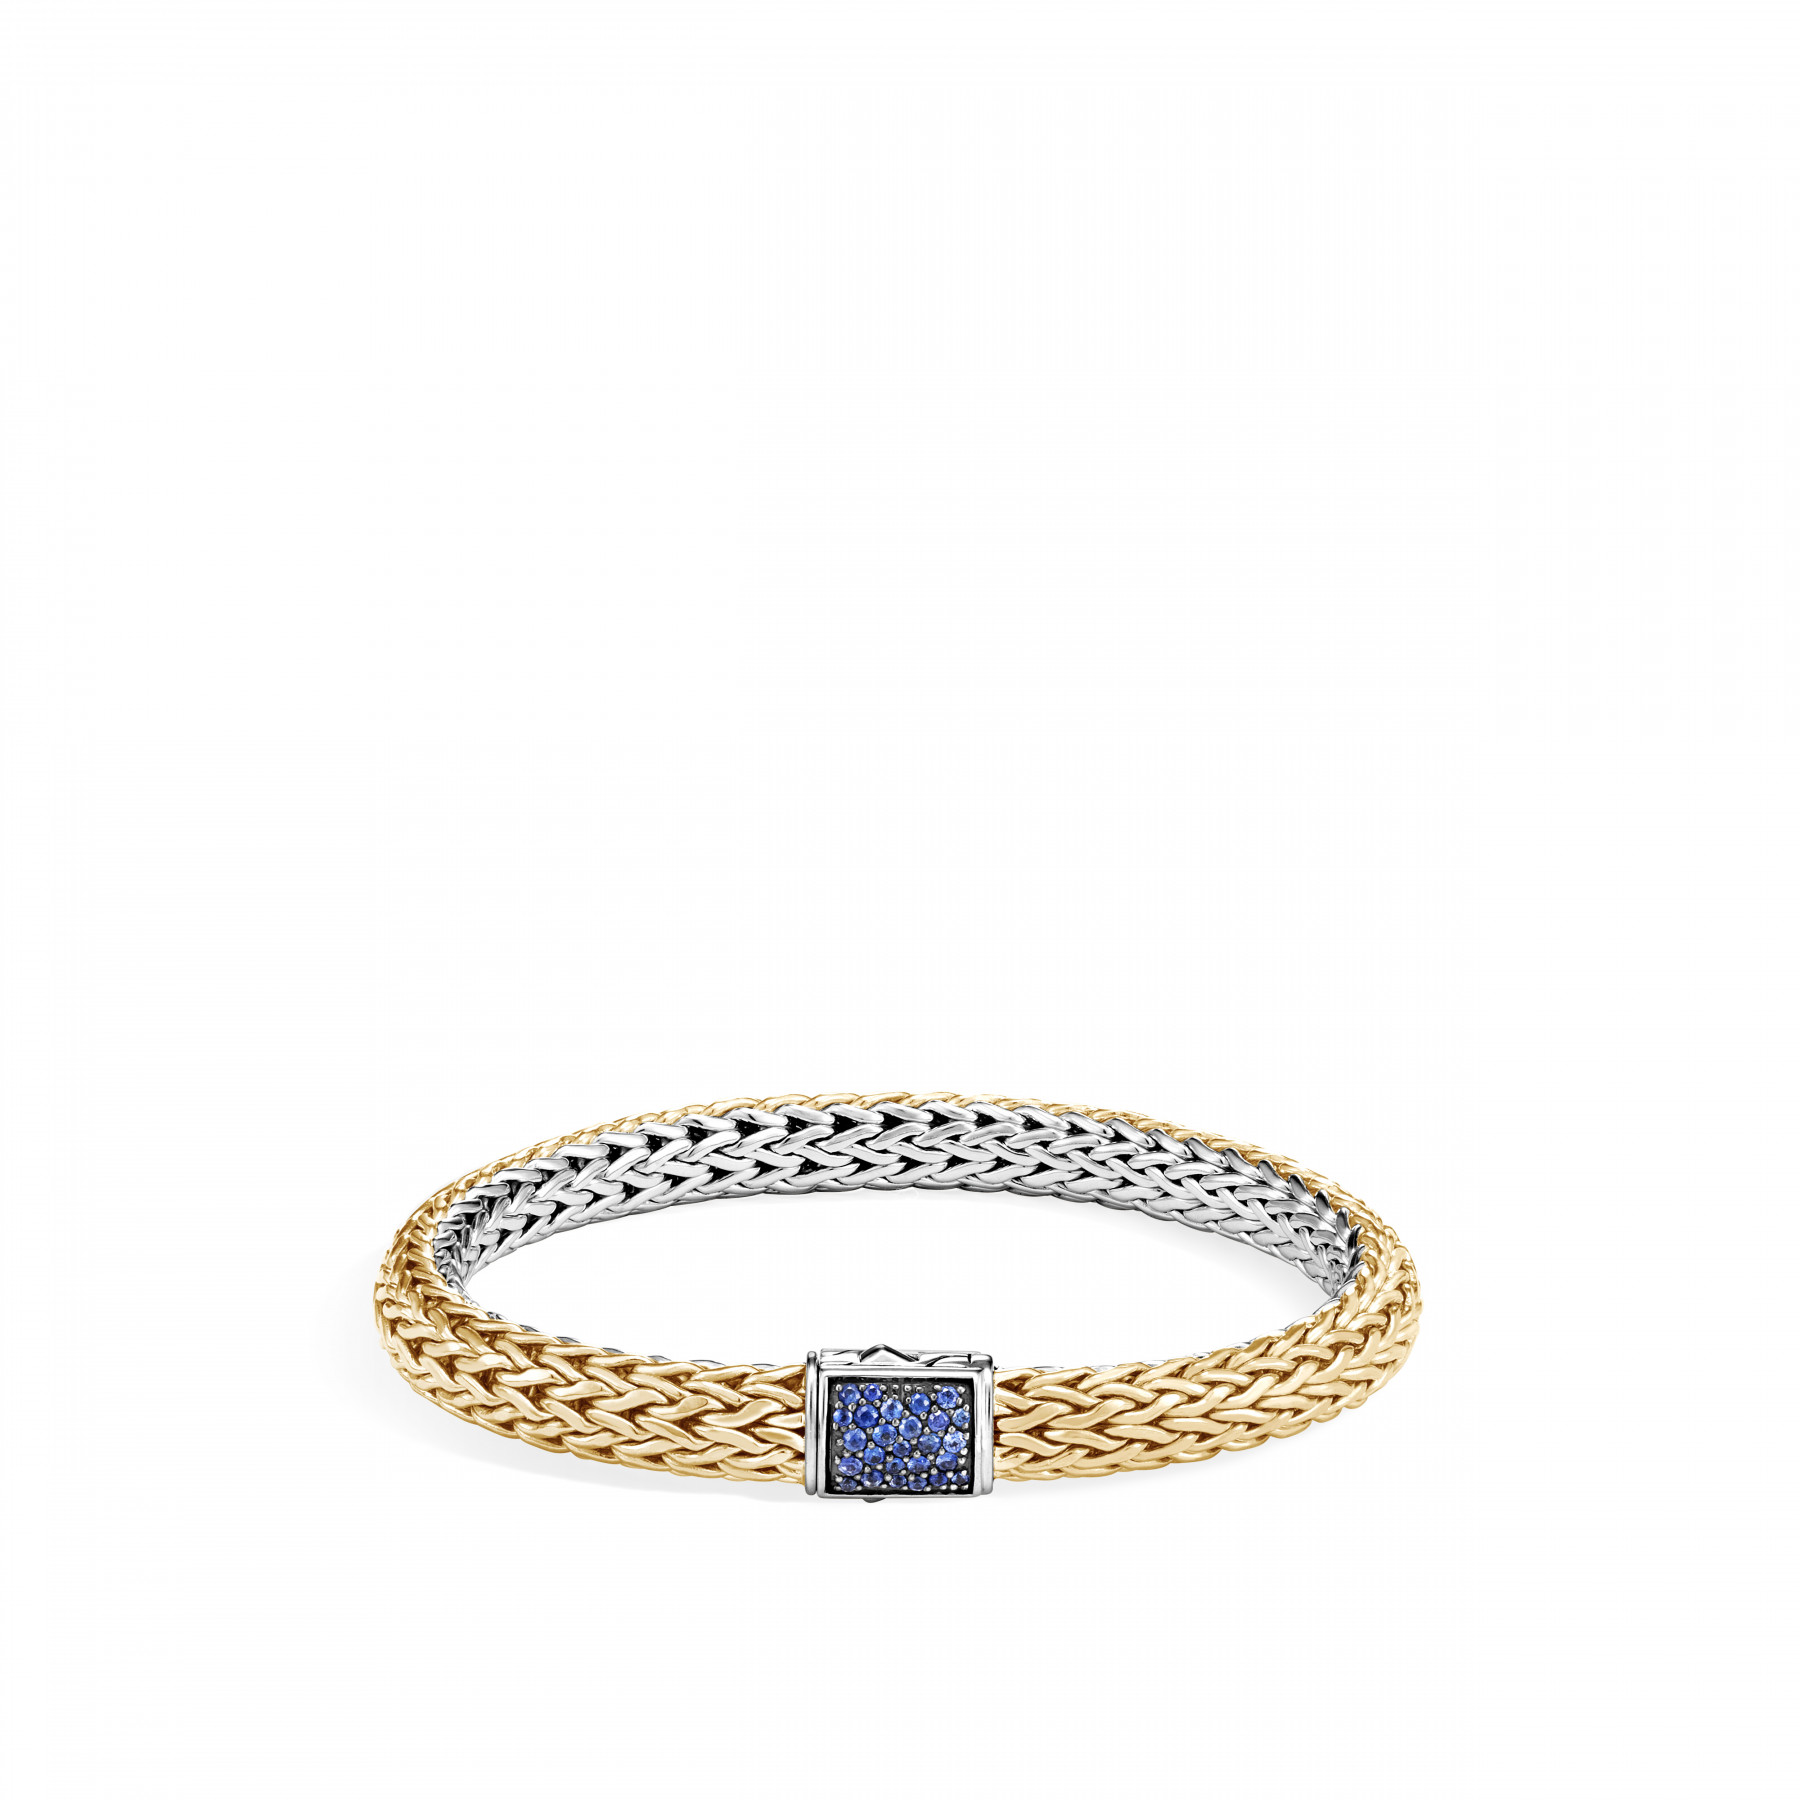 John Hardy Classic Chain Two Tone Gemstone Bracelet with Diamonds and Sapphires (7.5mm) front image gold